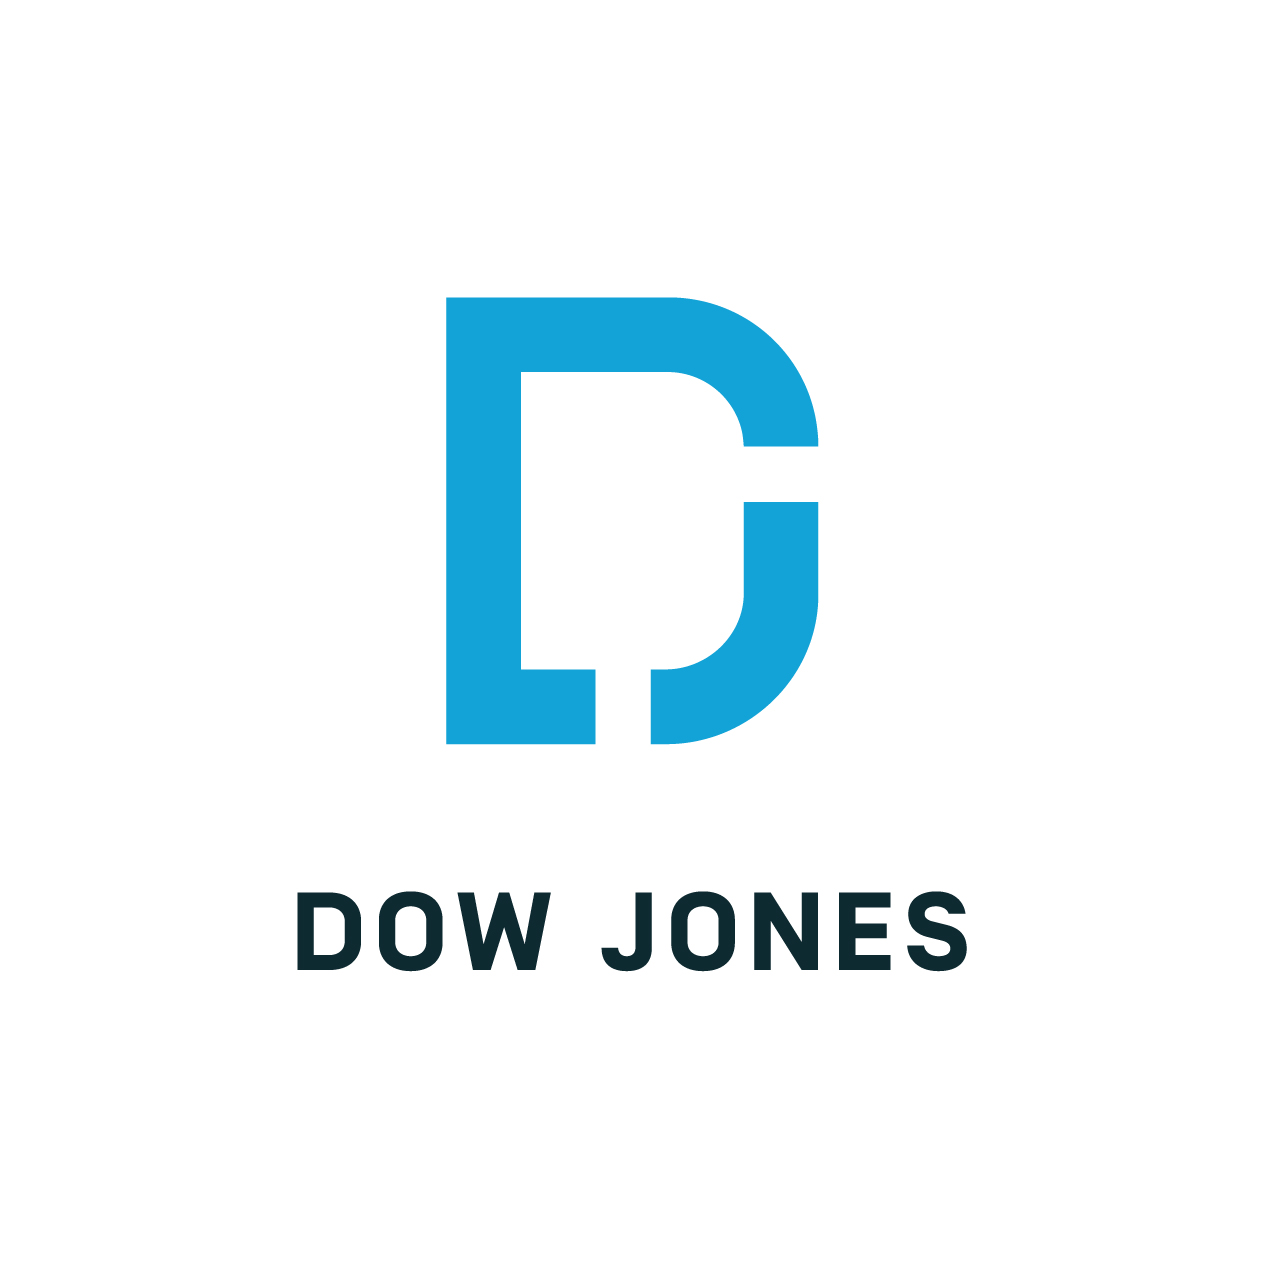 Dow_Jones_Logo_(Media_Company).jpg